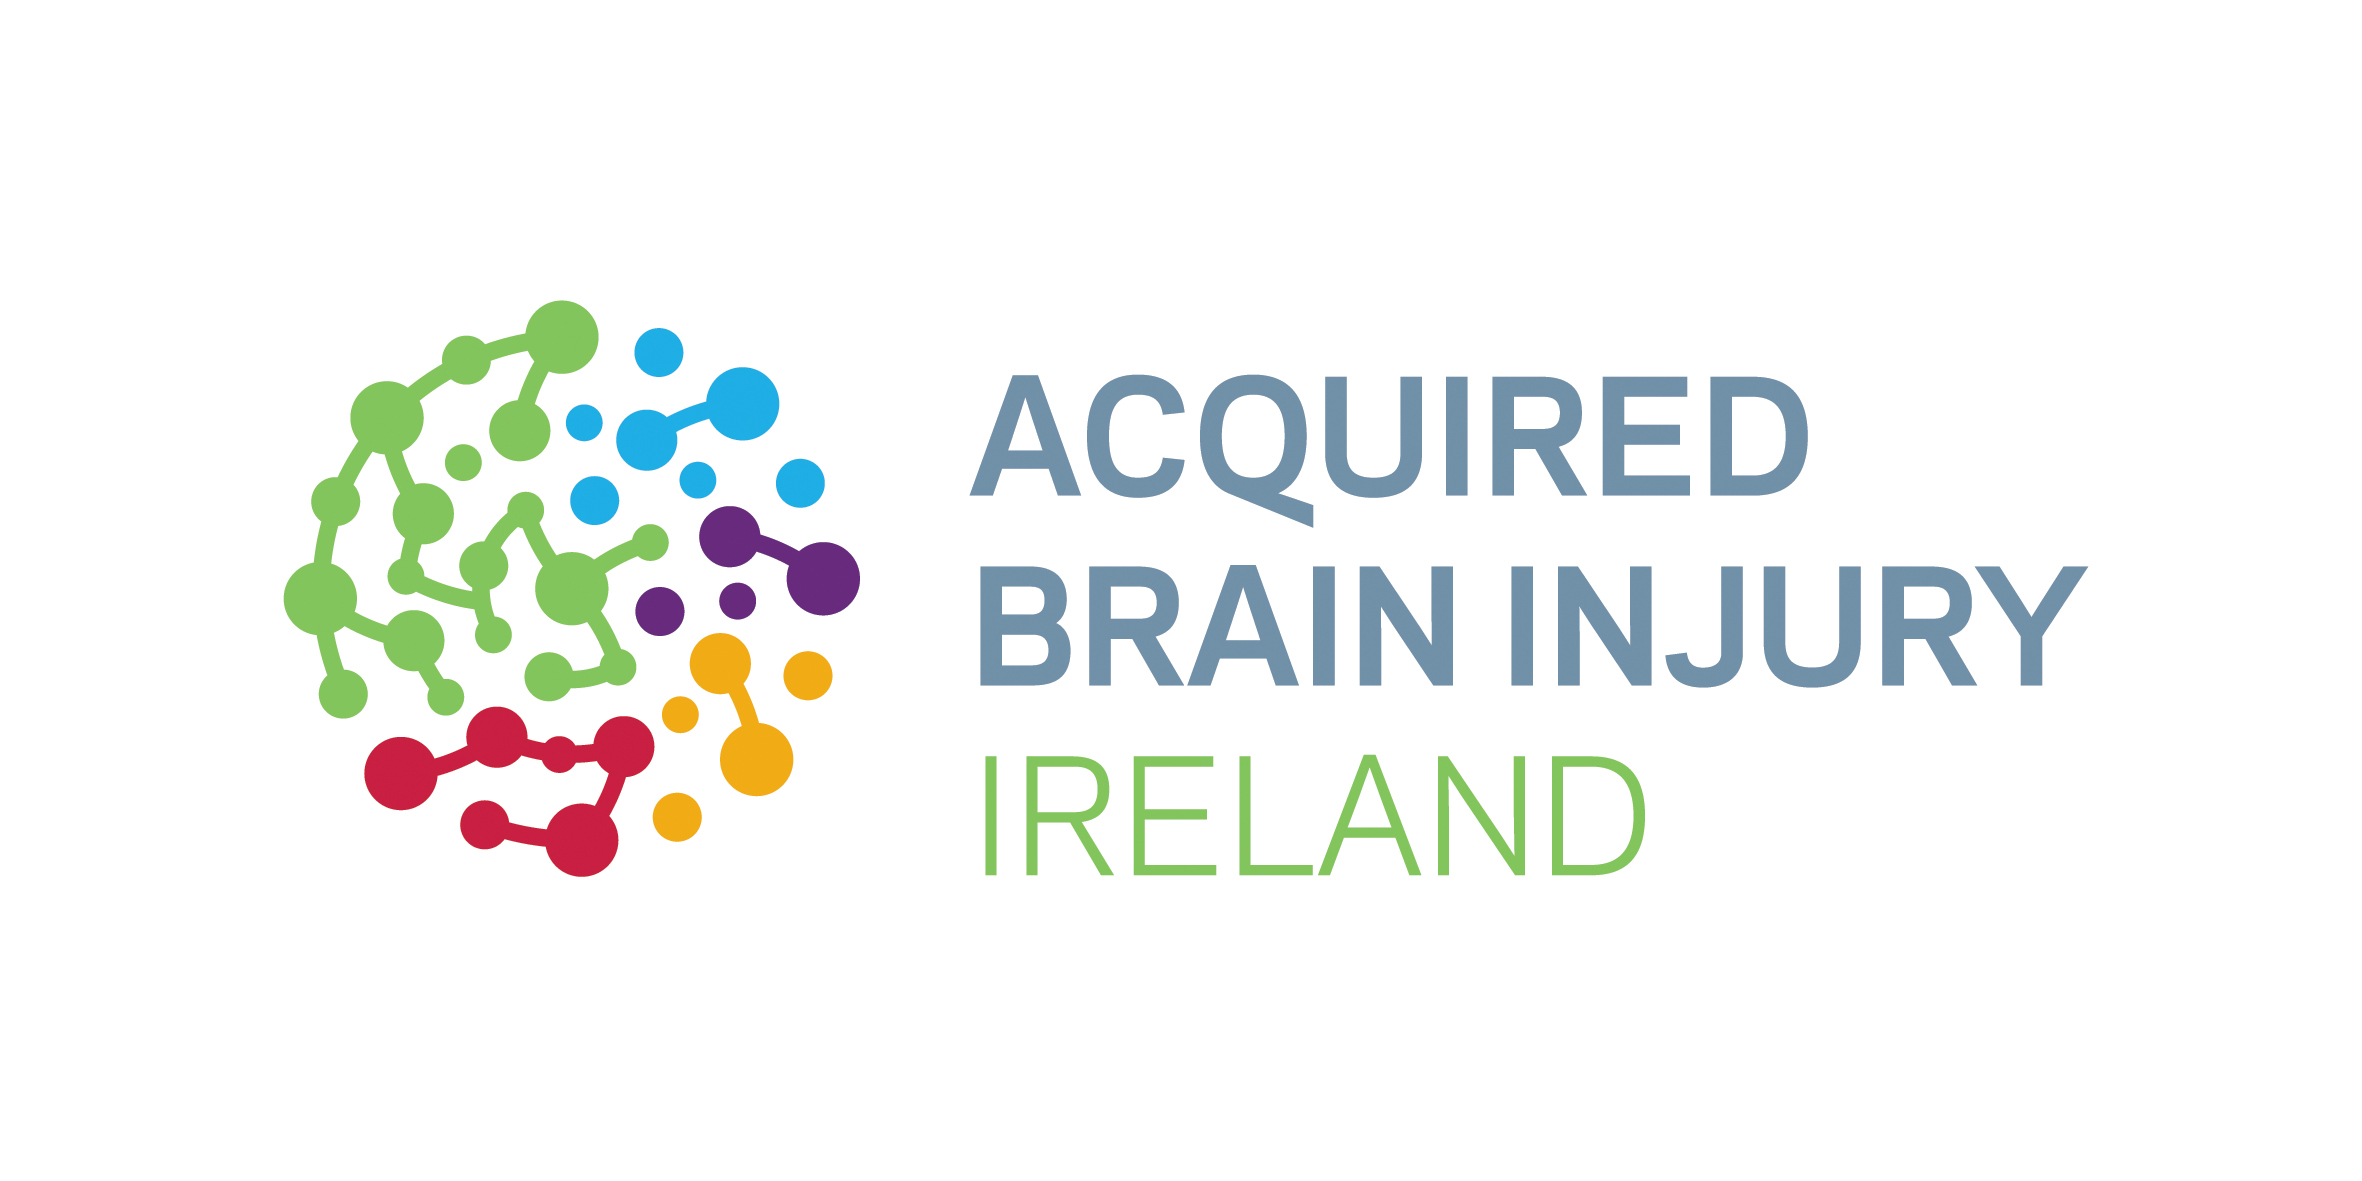 Acquired Brain Injury Ireland uses Talent Recruiter